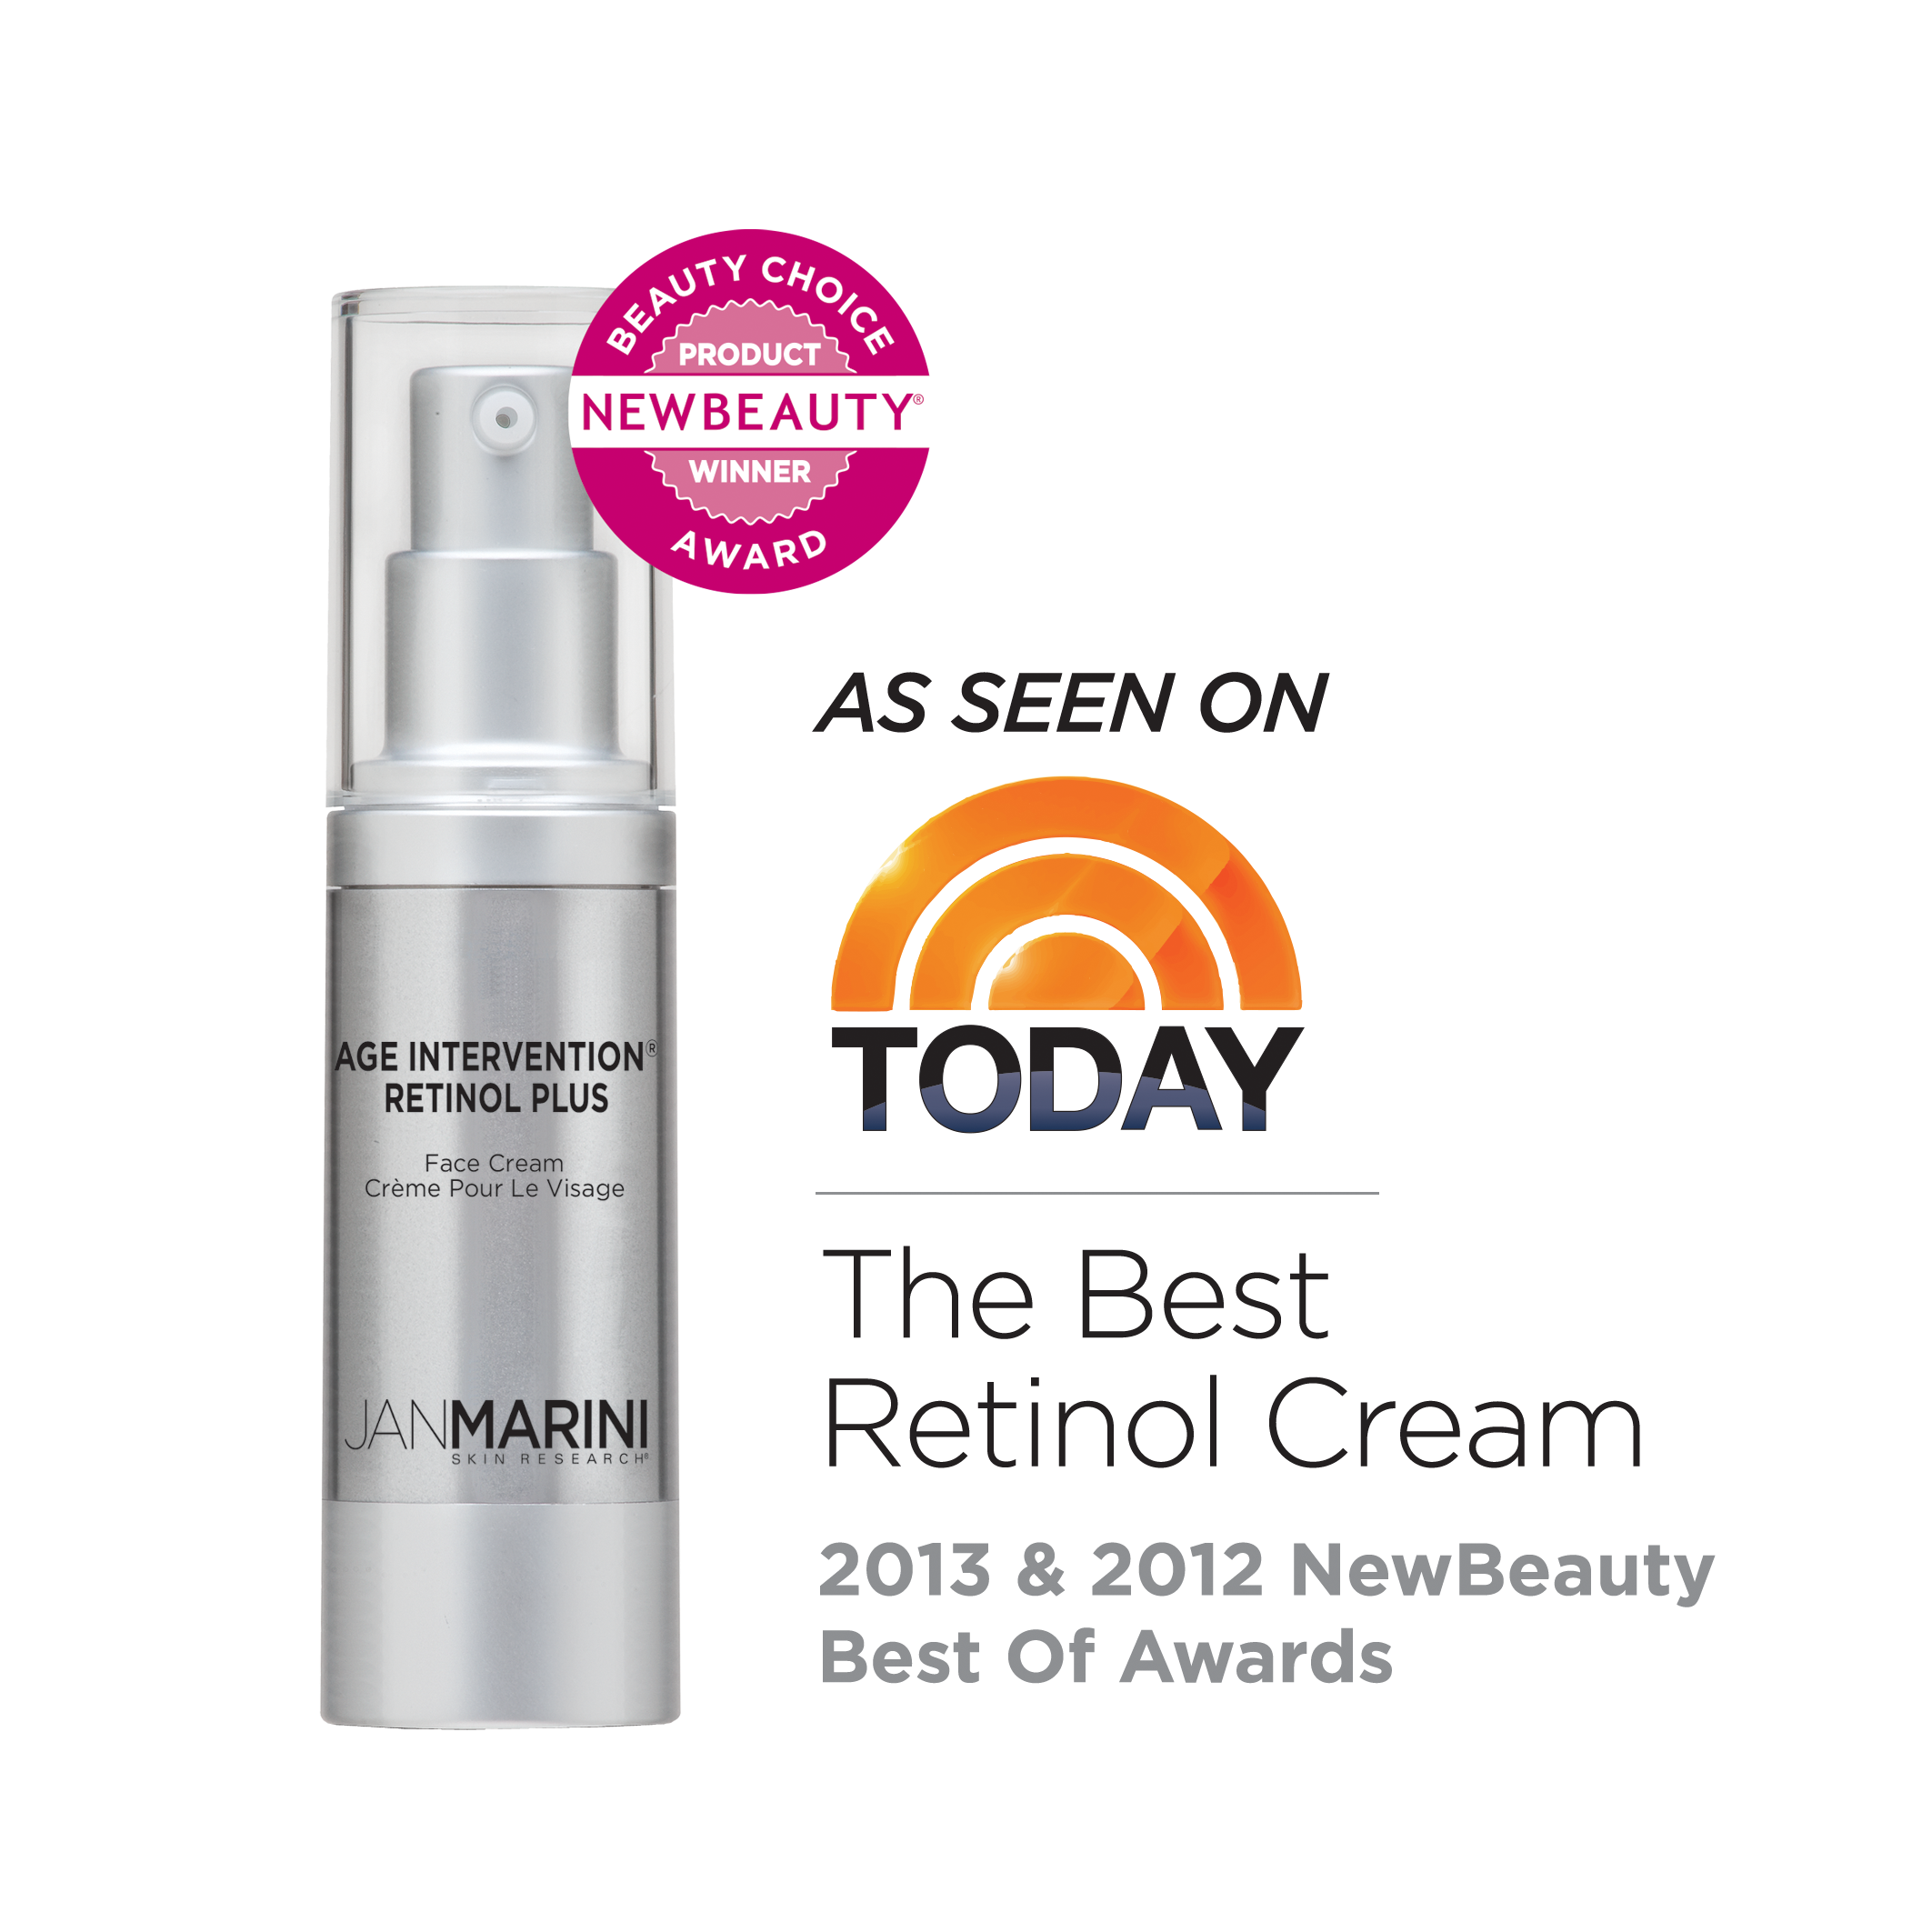 Product Images_HiRes_Age_Intervention_Retinol_Plus_and_Awards_HiRes.png